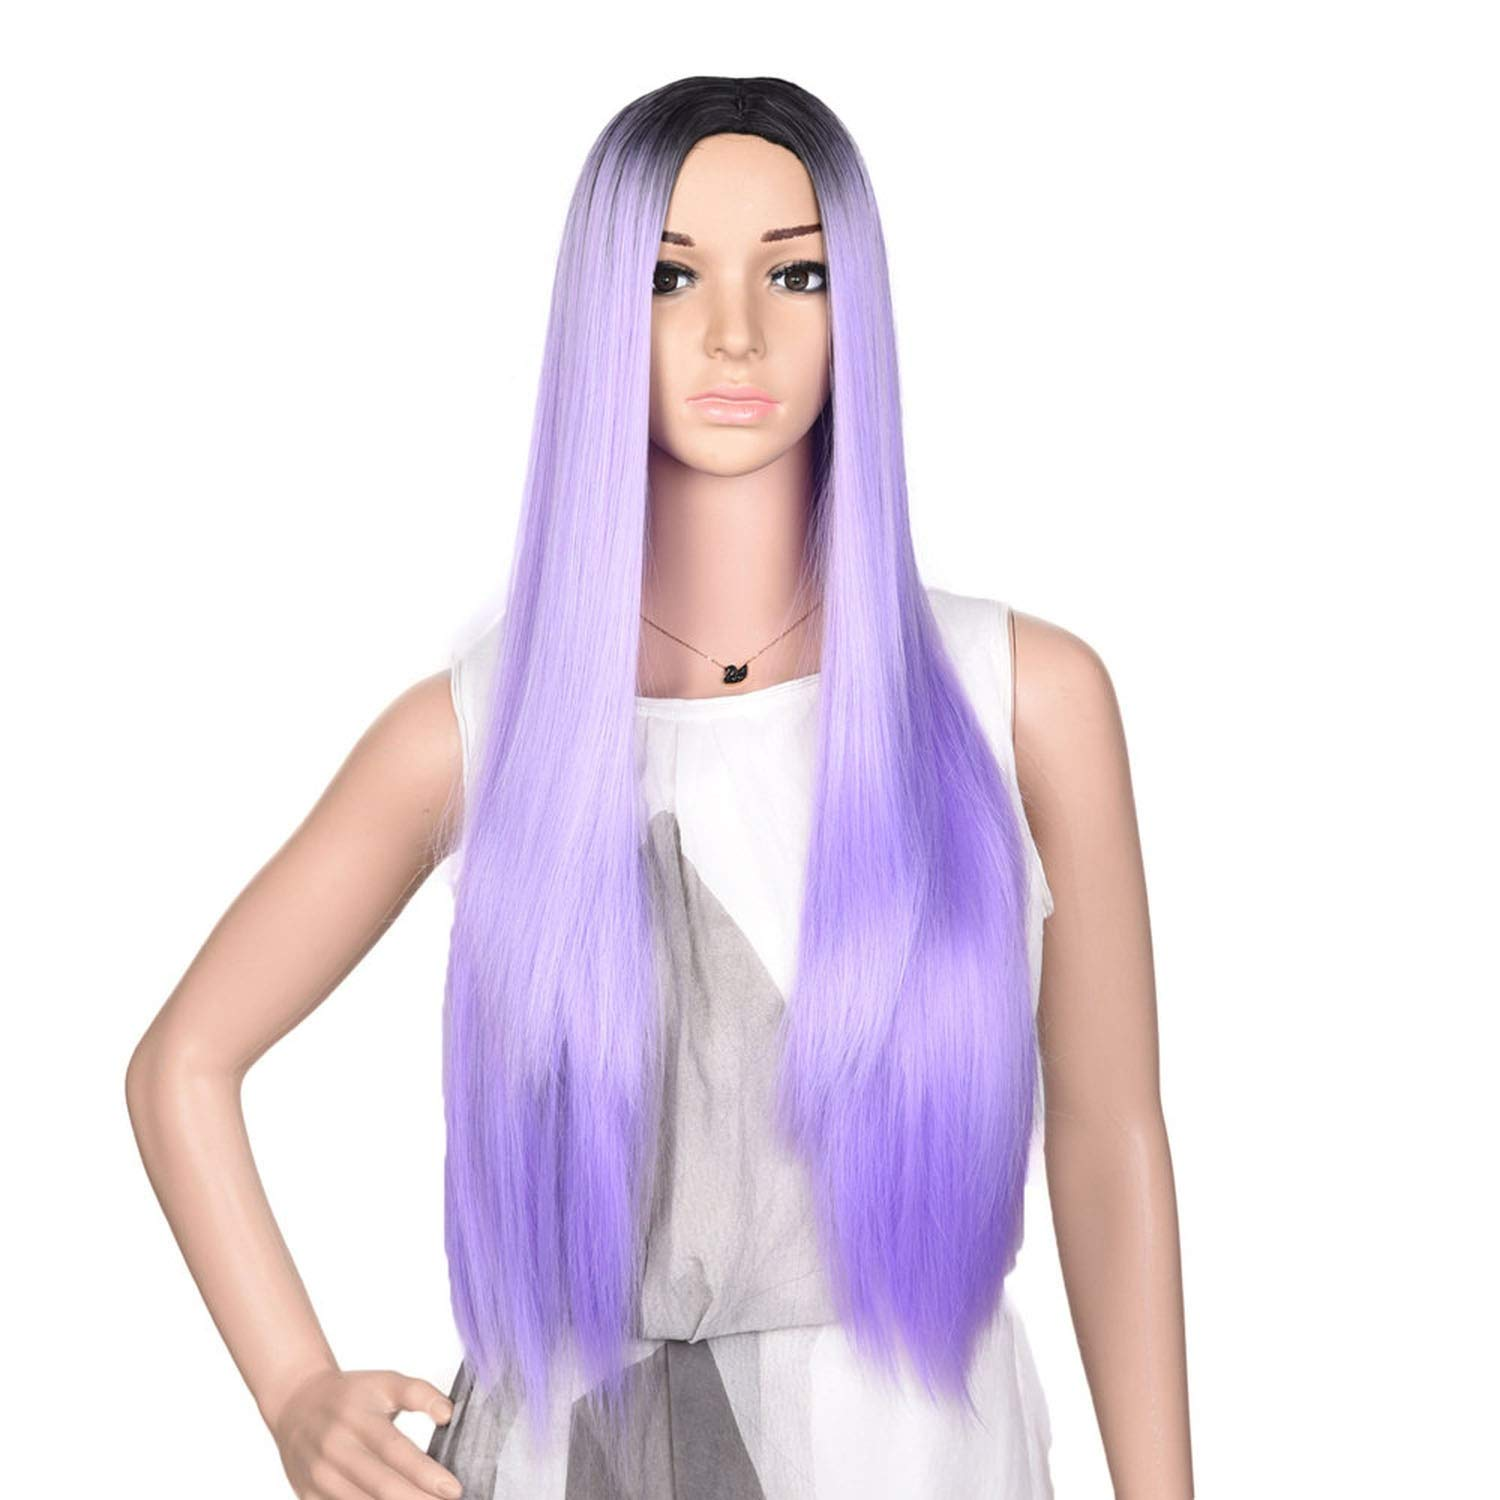 Gray Wig Synthetic Hair 60cm 280g Long Straight Full Head Black Grey Wigs for Women Hair Extensions,purple,24inches